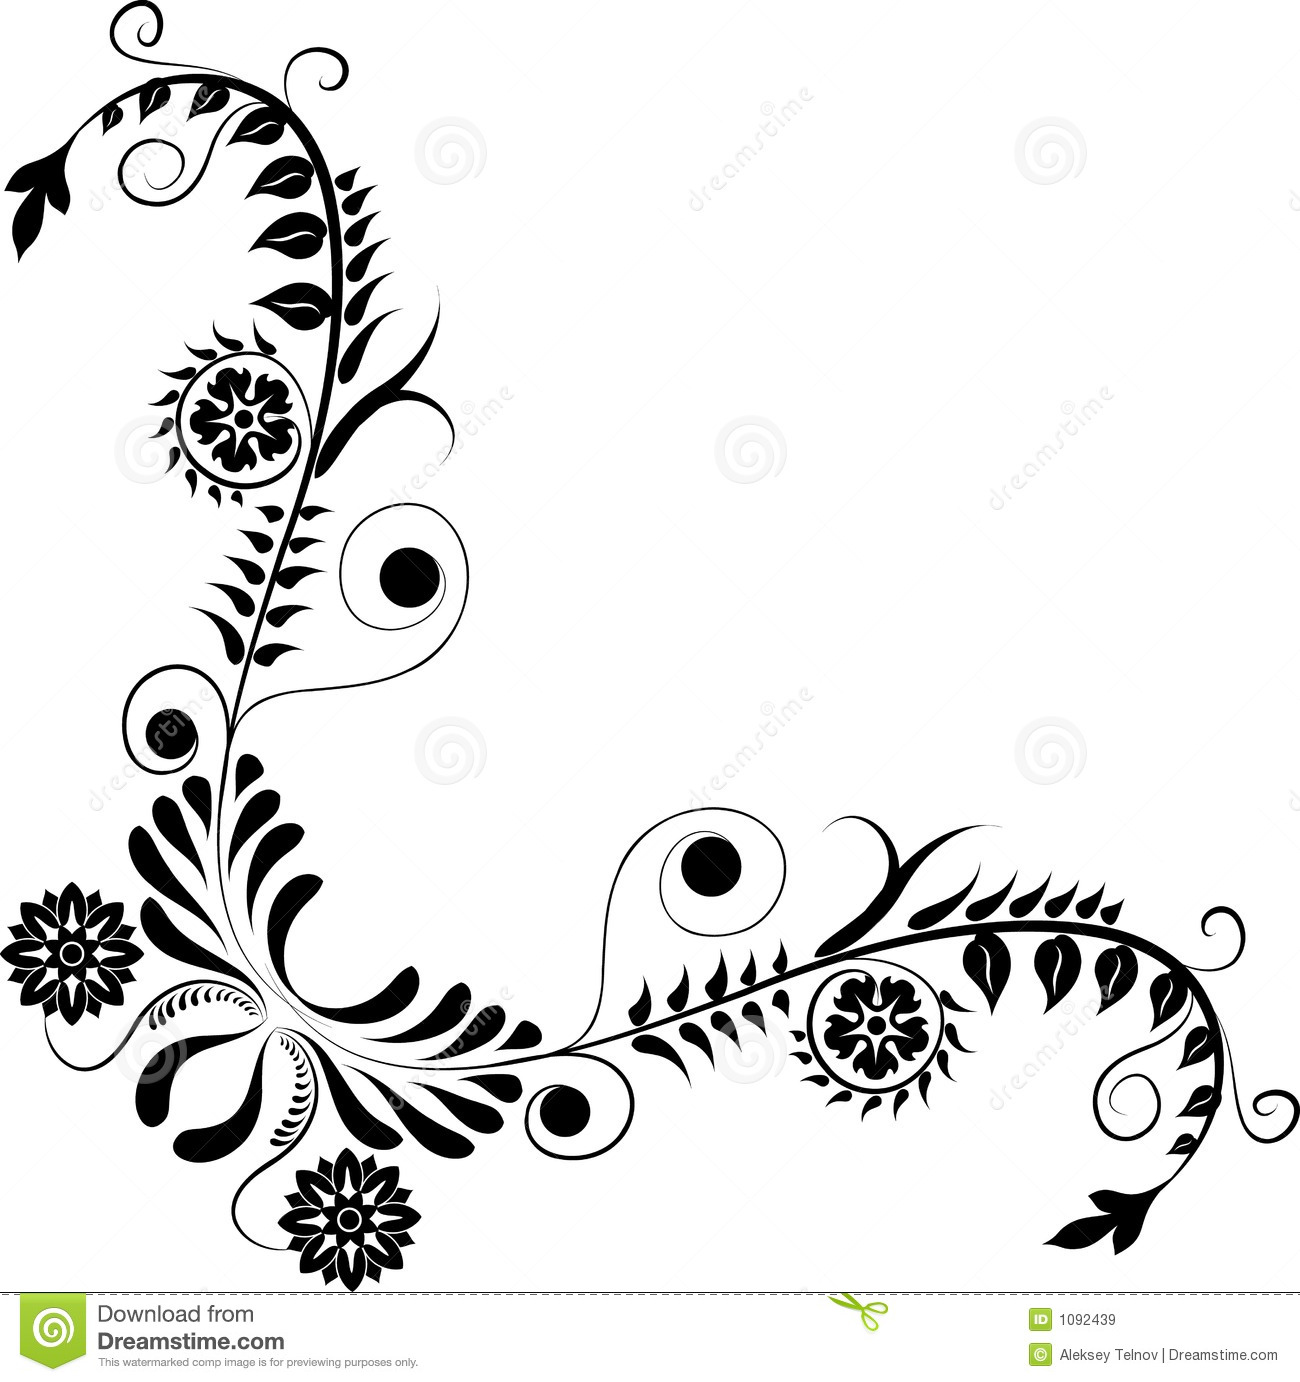 Black and white abstract flower designs pictures